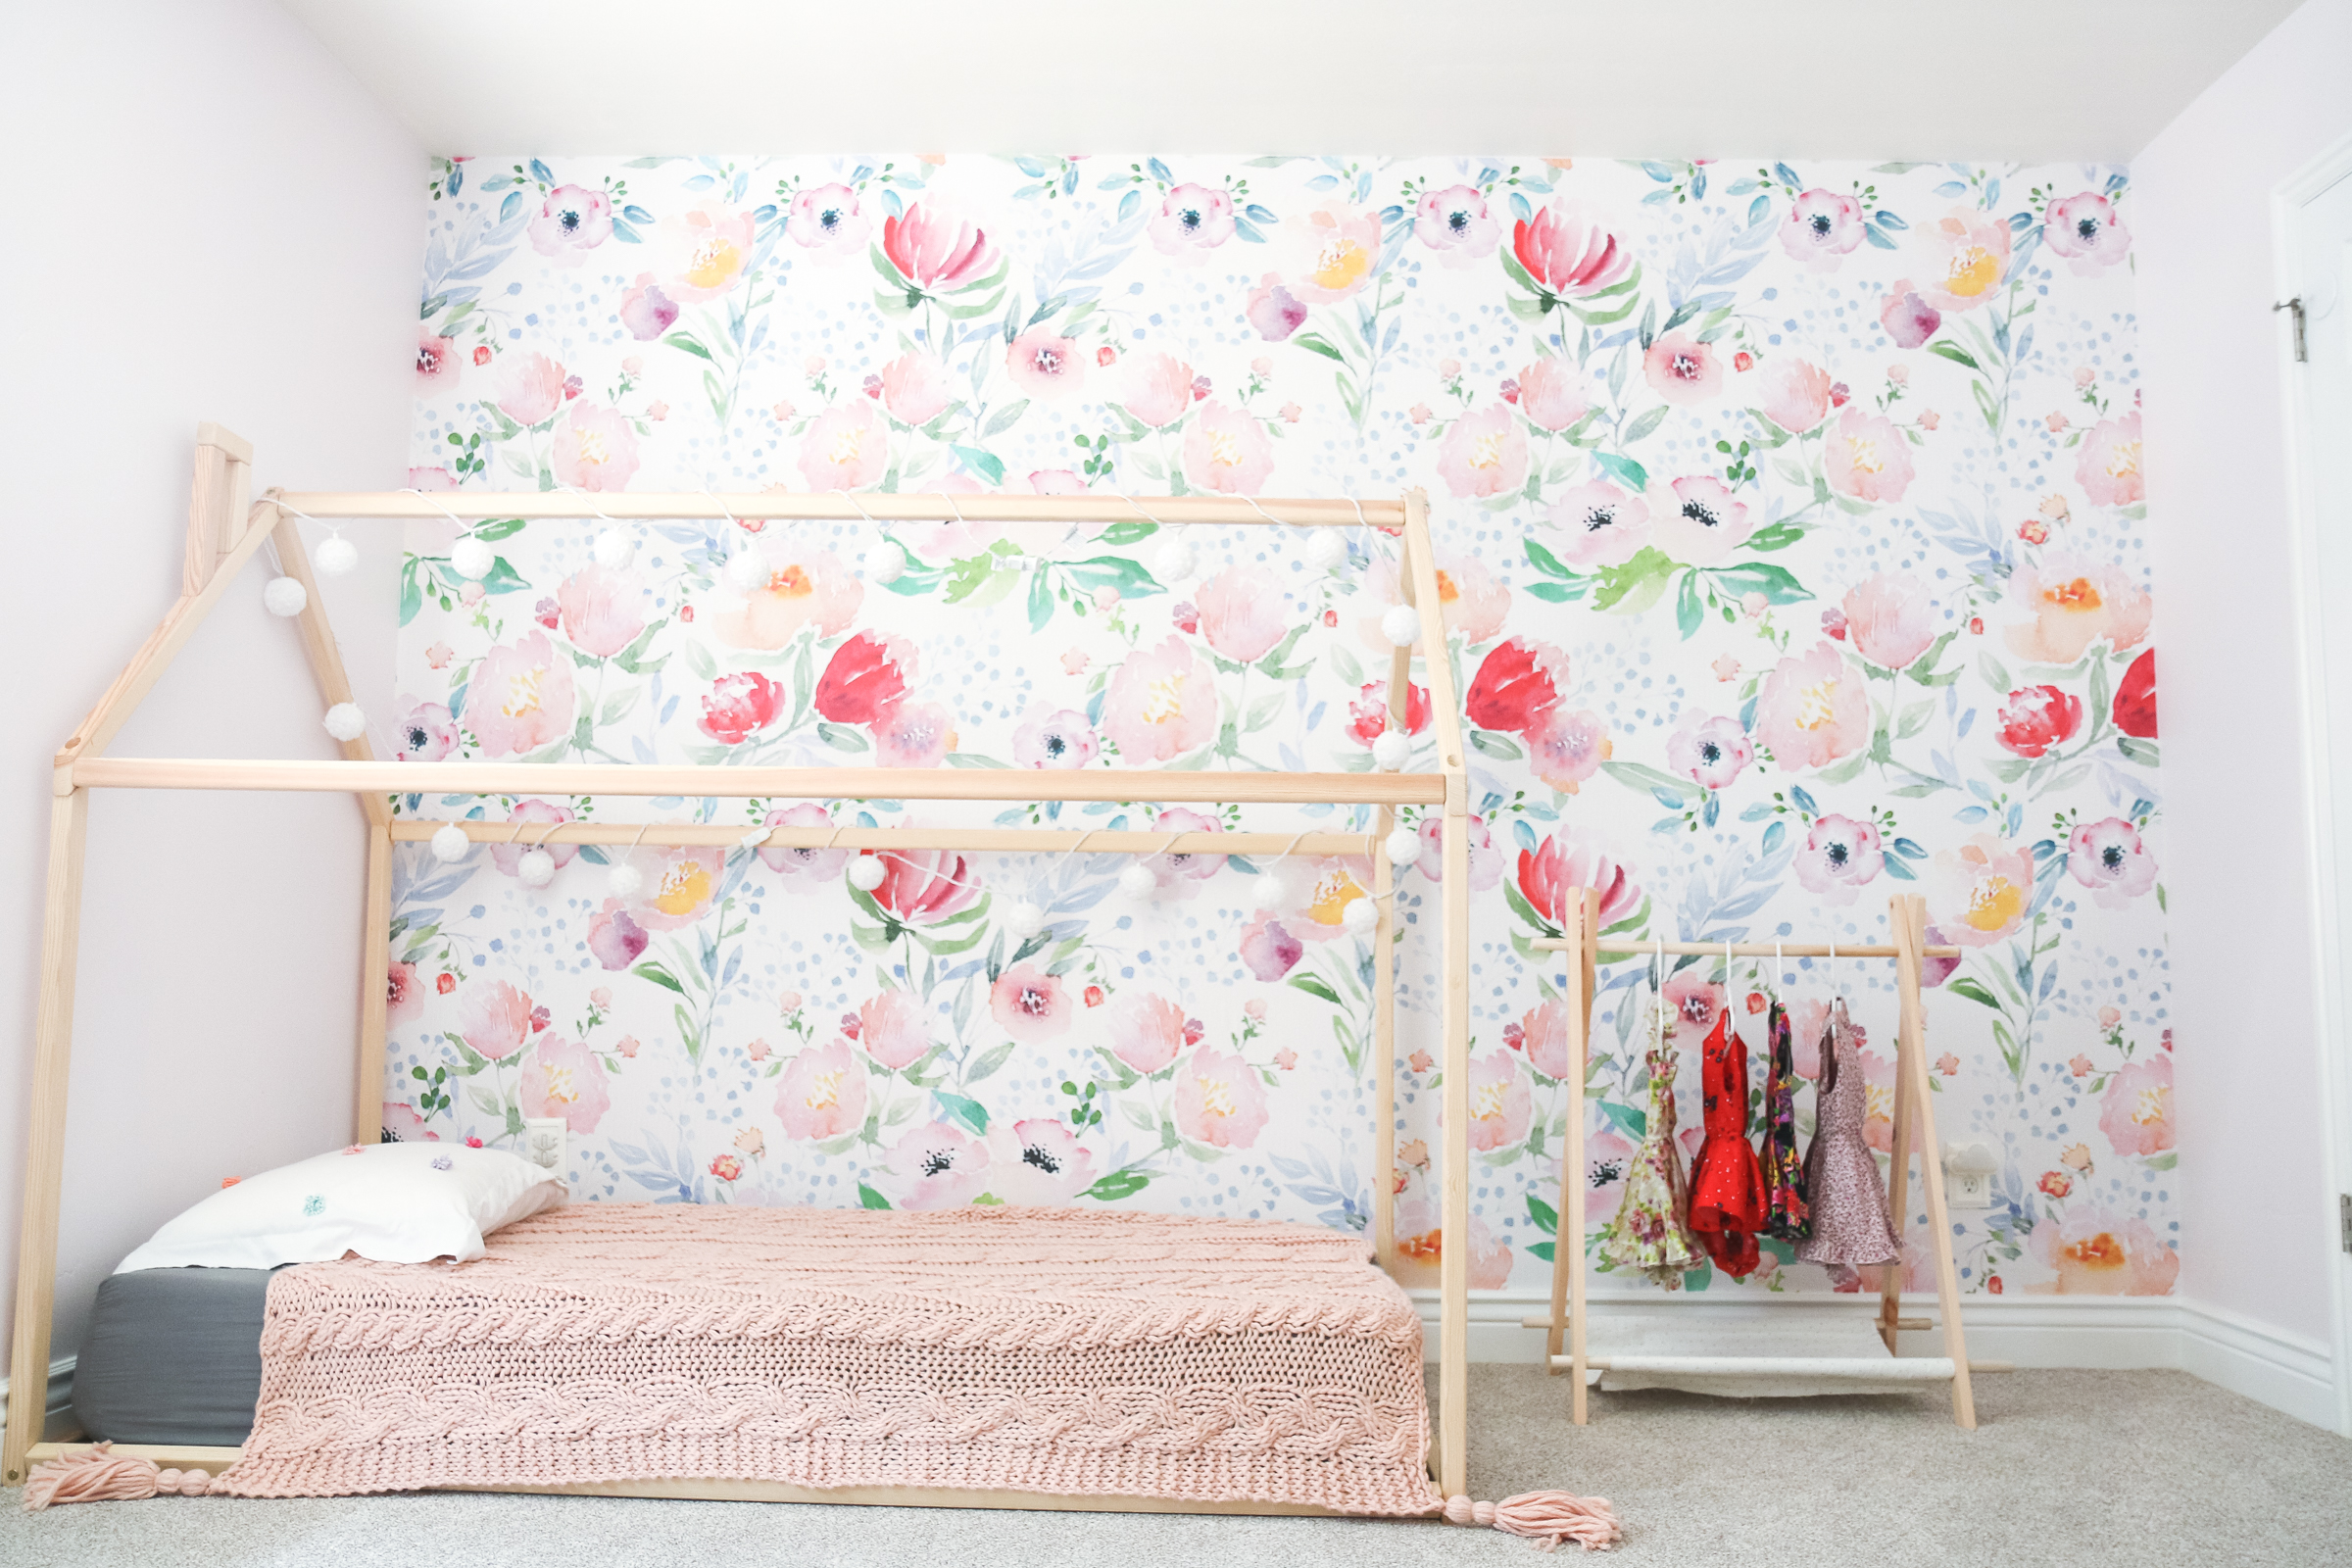 Decorating An Accent Wall With Vinyl Wallpaper | SandyALaMode